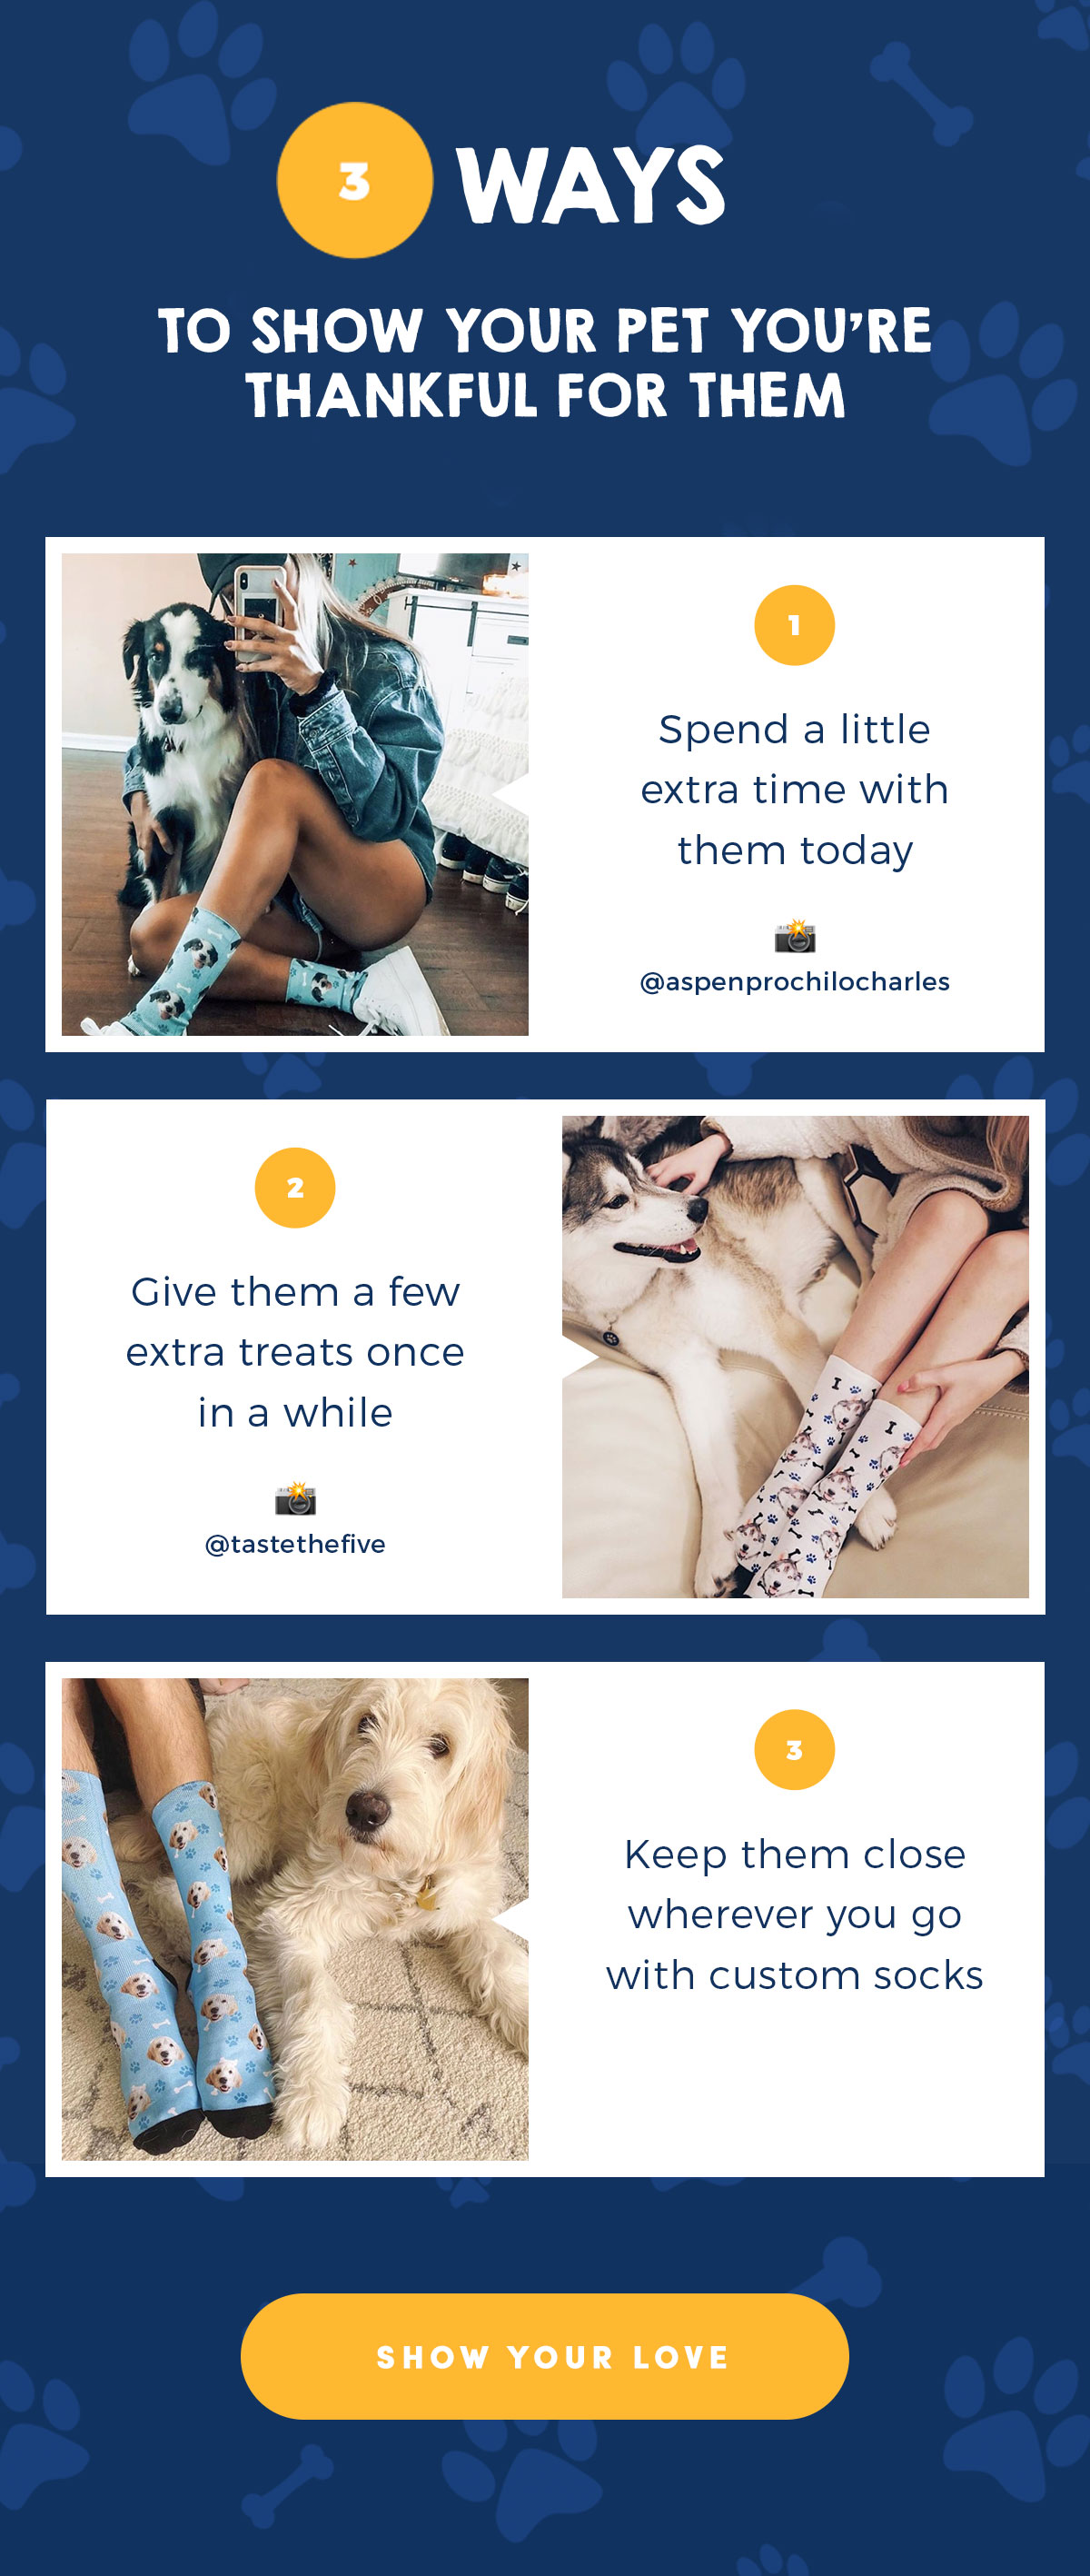 3 ways to show your pet you're thankful for them | SHOW YOUR LOVE